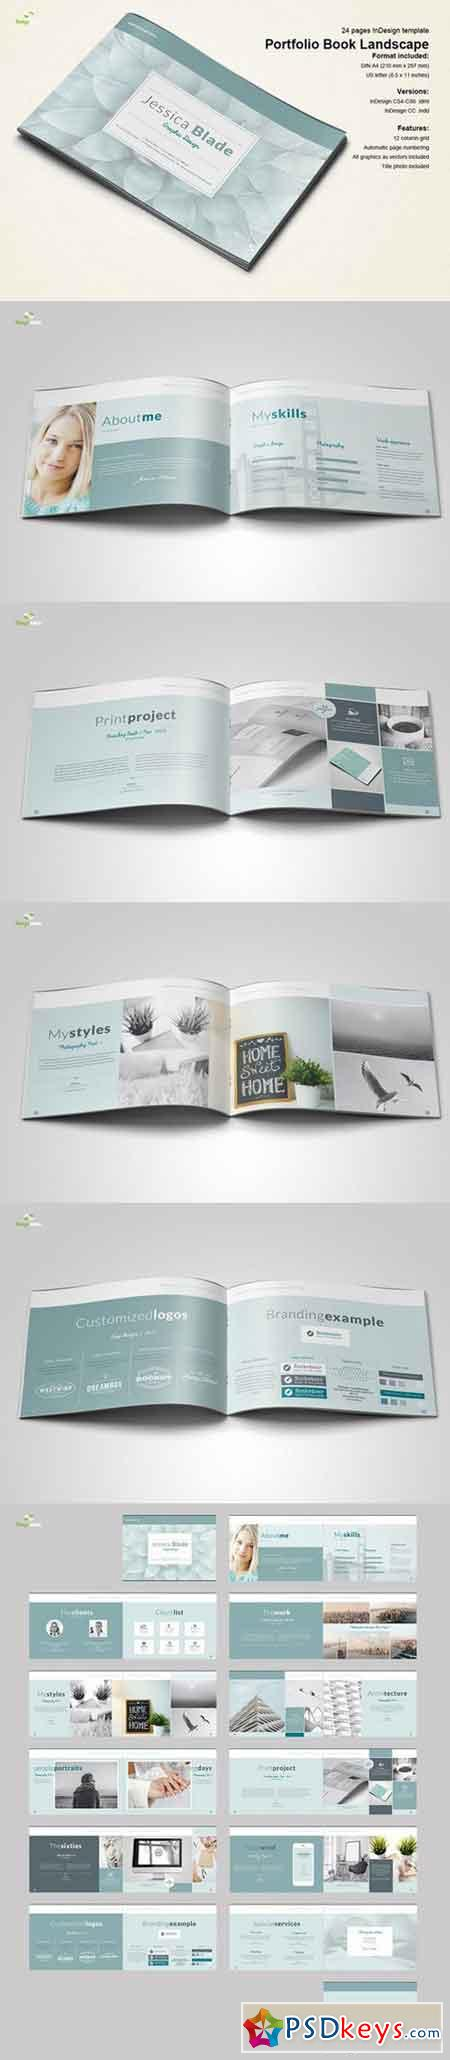 Horizontal Portfolio Book 698553